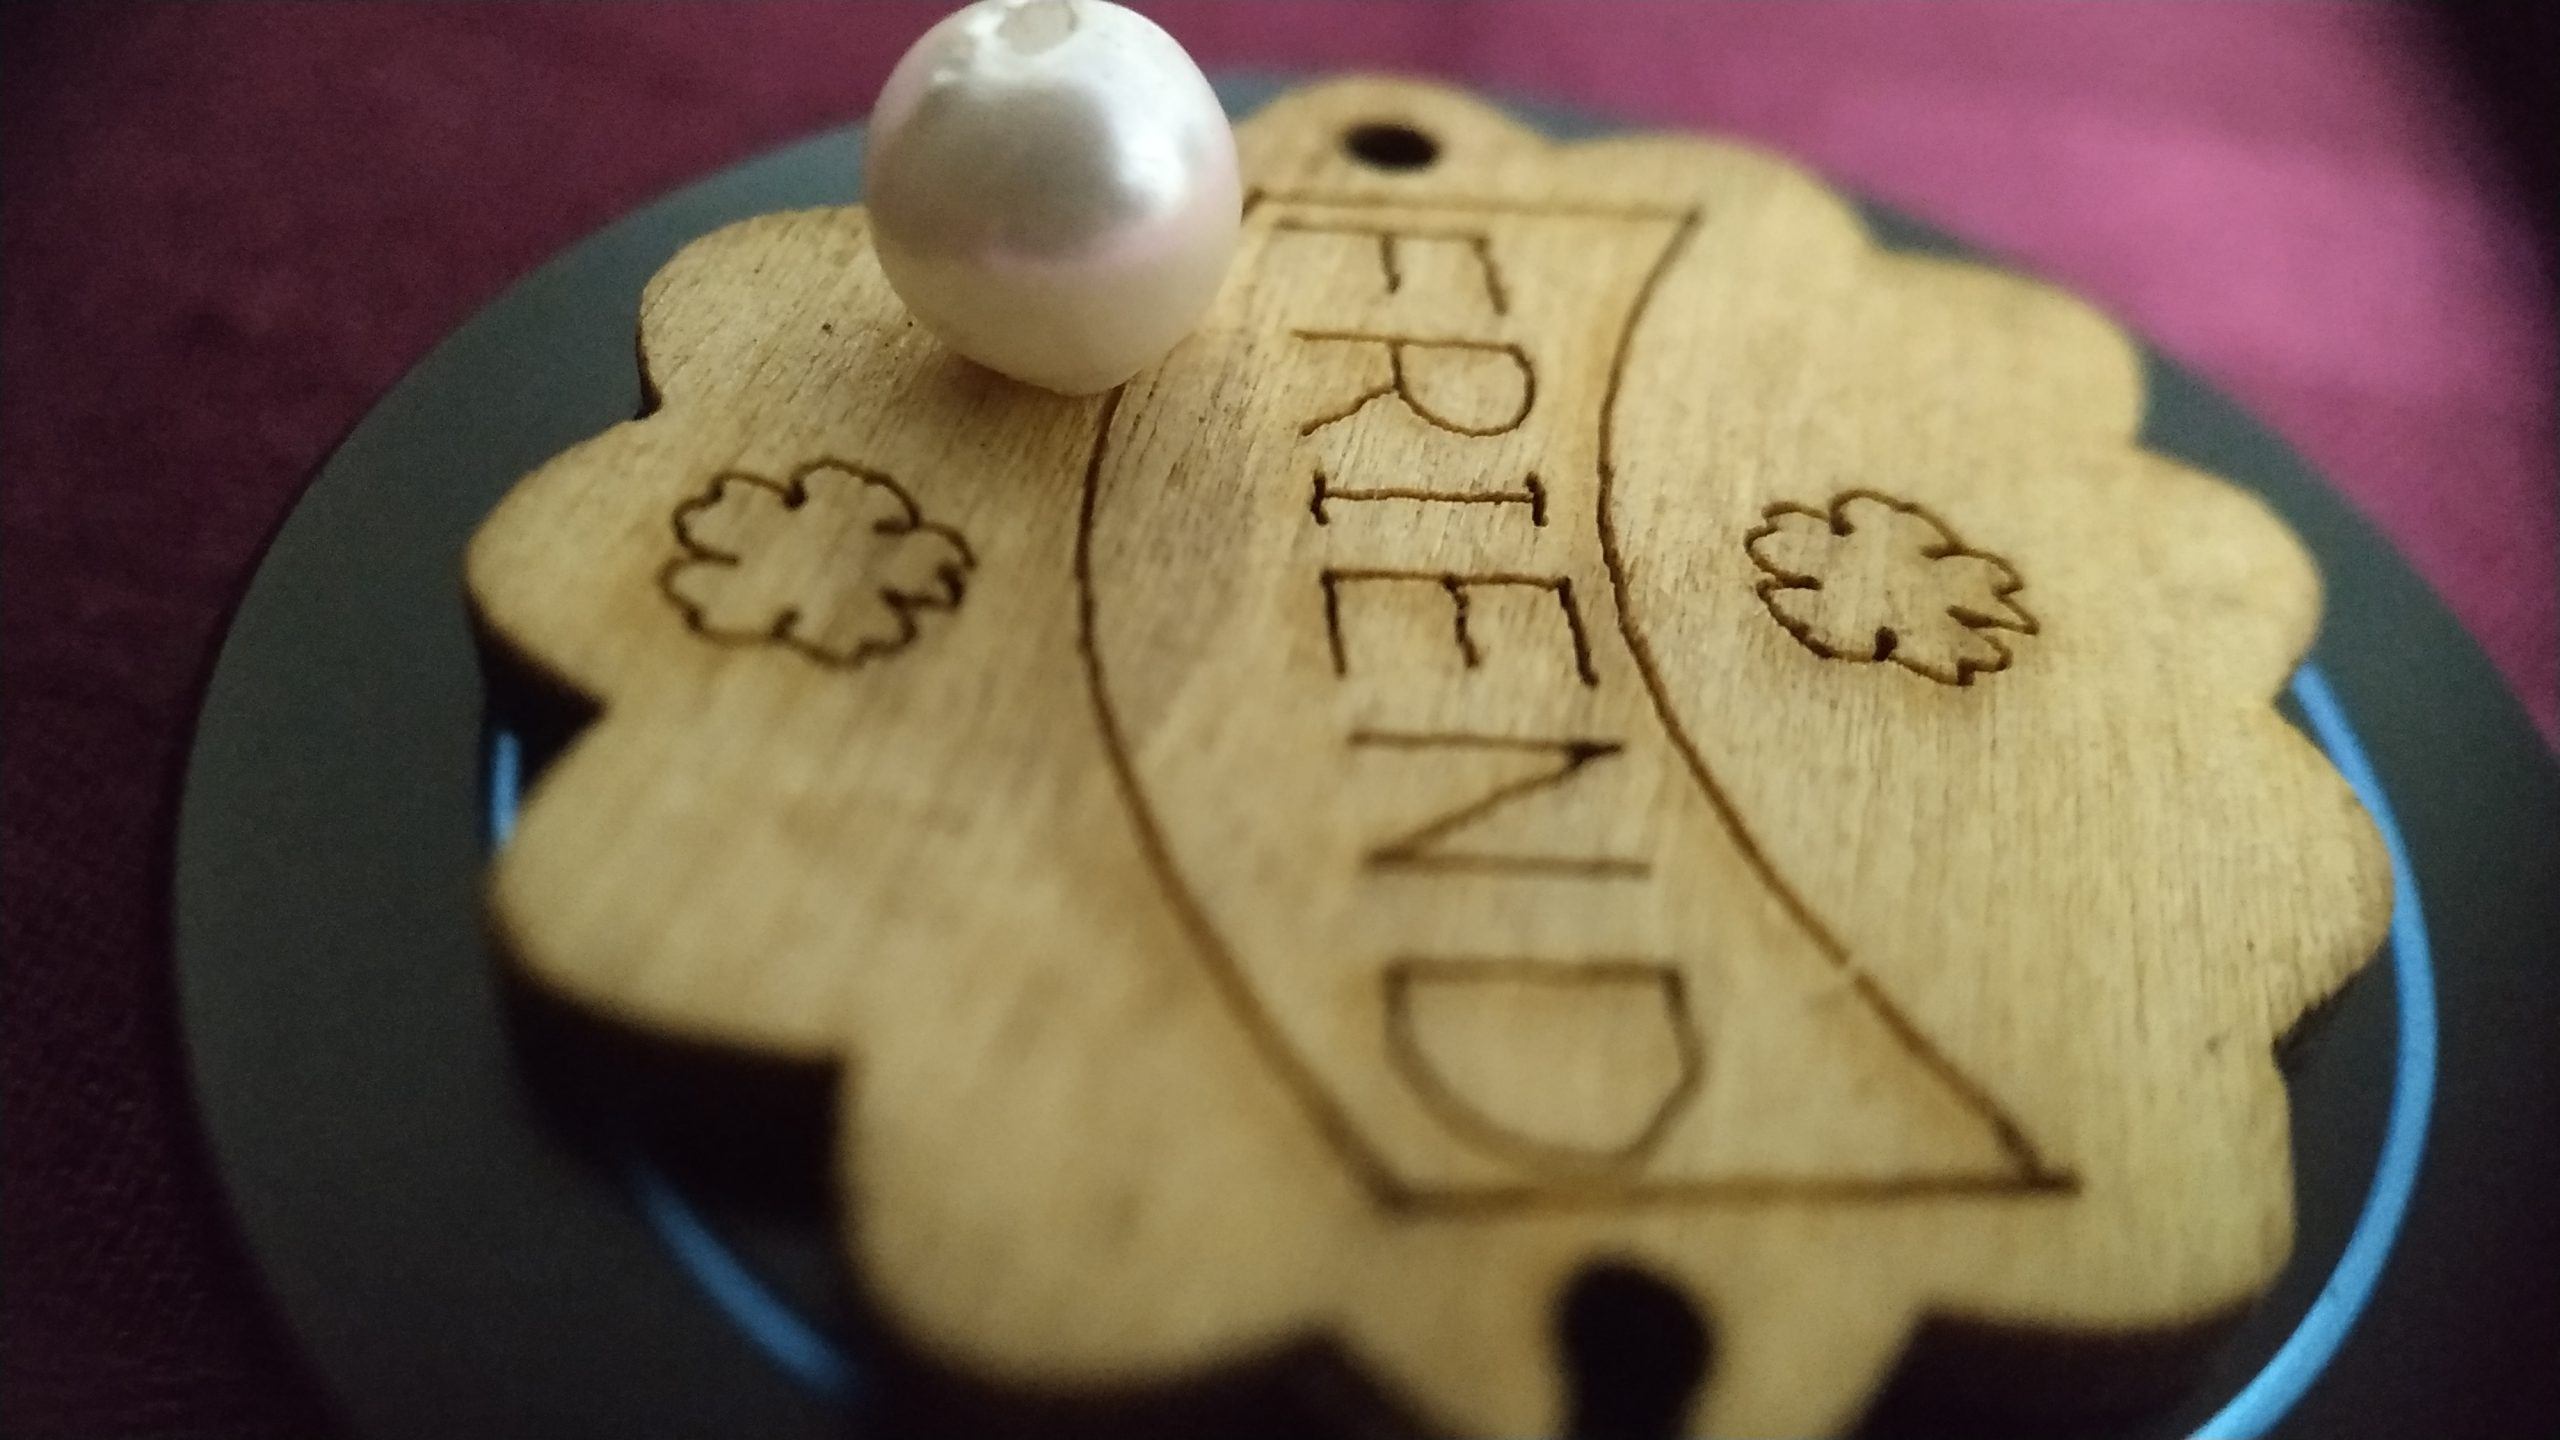 Word friend carved on a wood